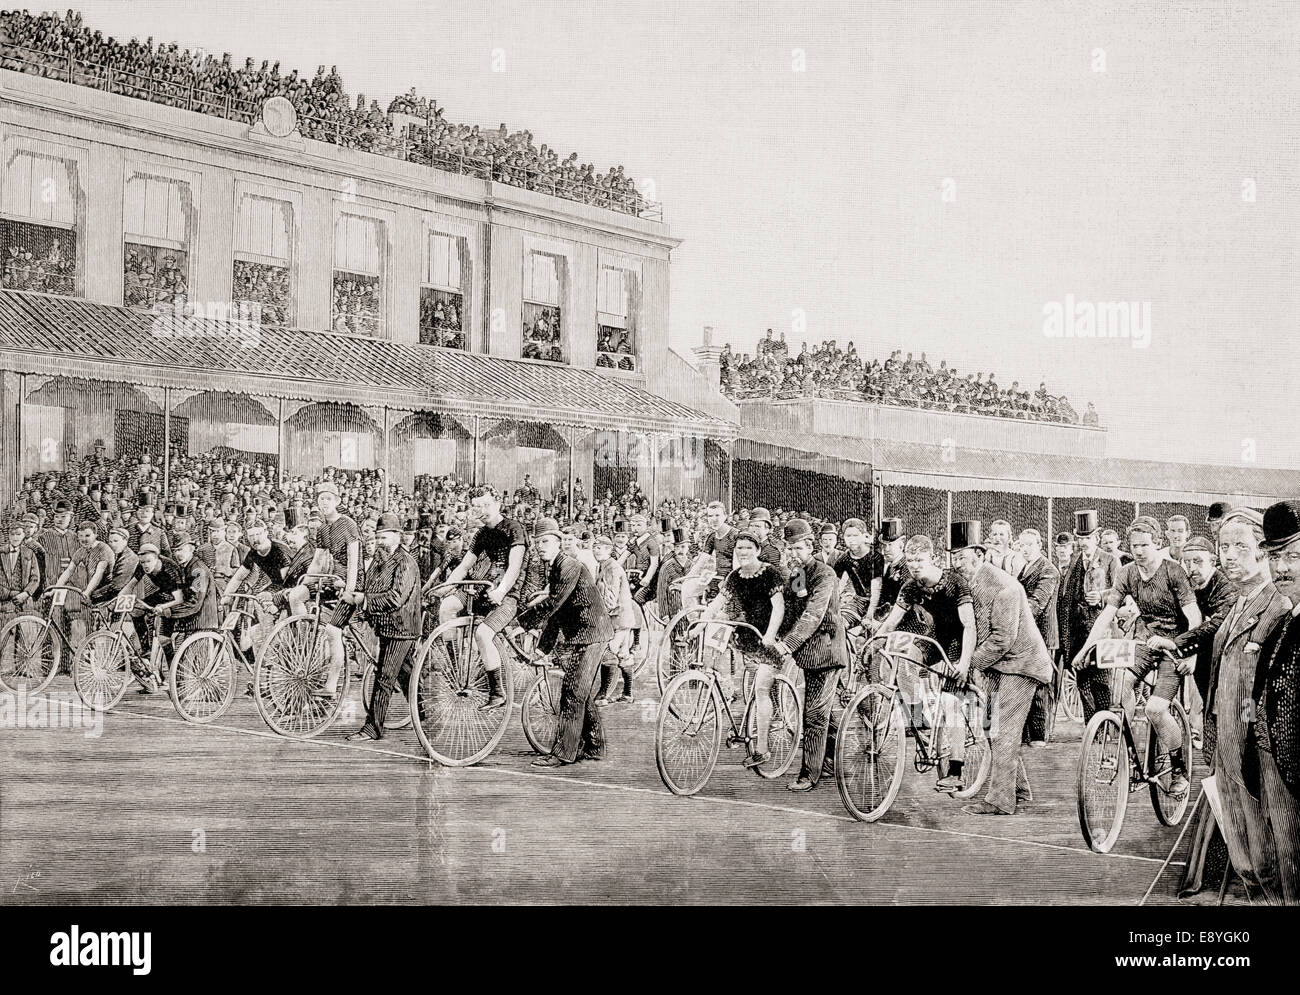 Kennington Oval, London, England.  Participants in a ten mile race wait at the starting line c.1892. - Stock Image